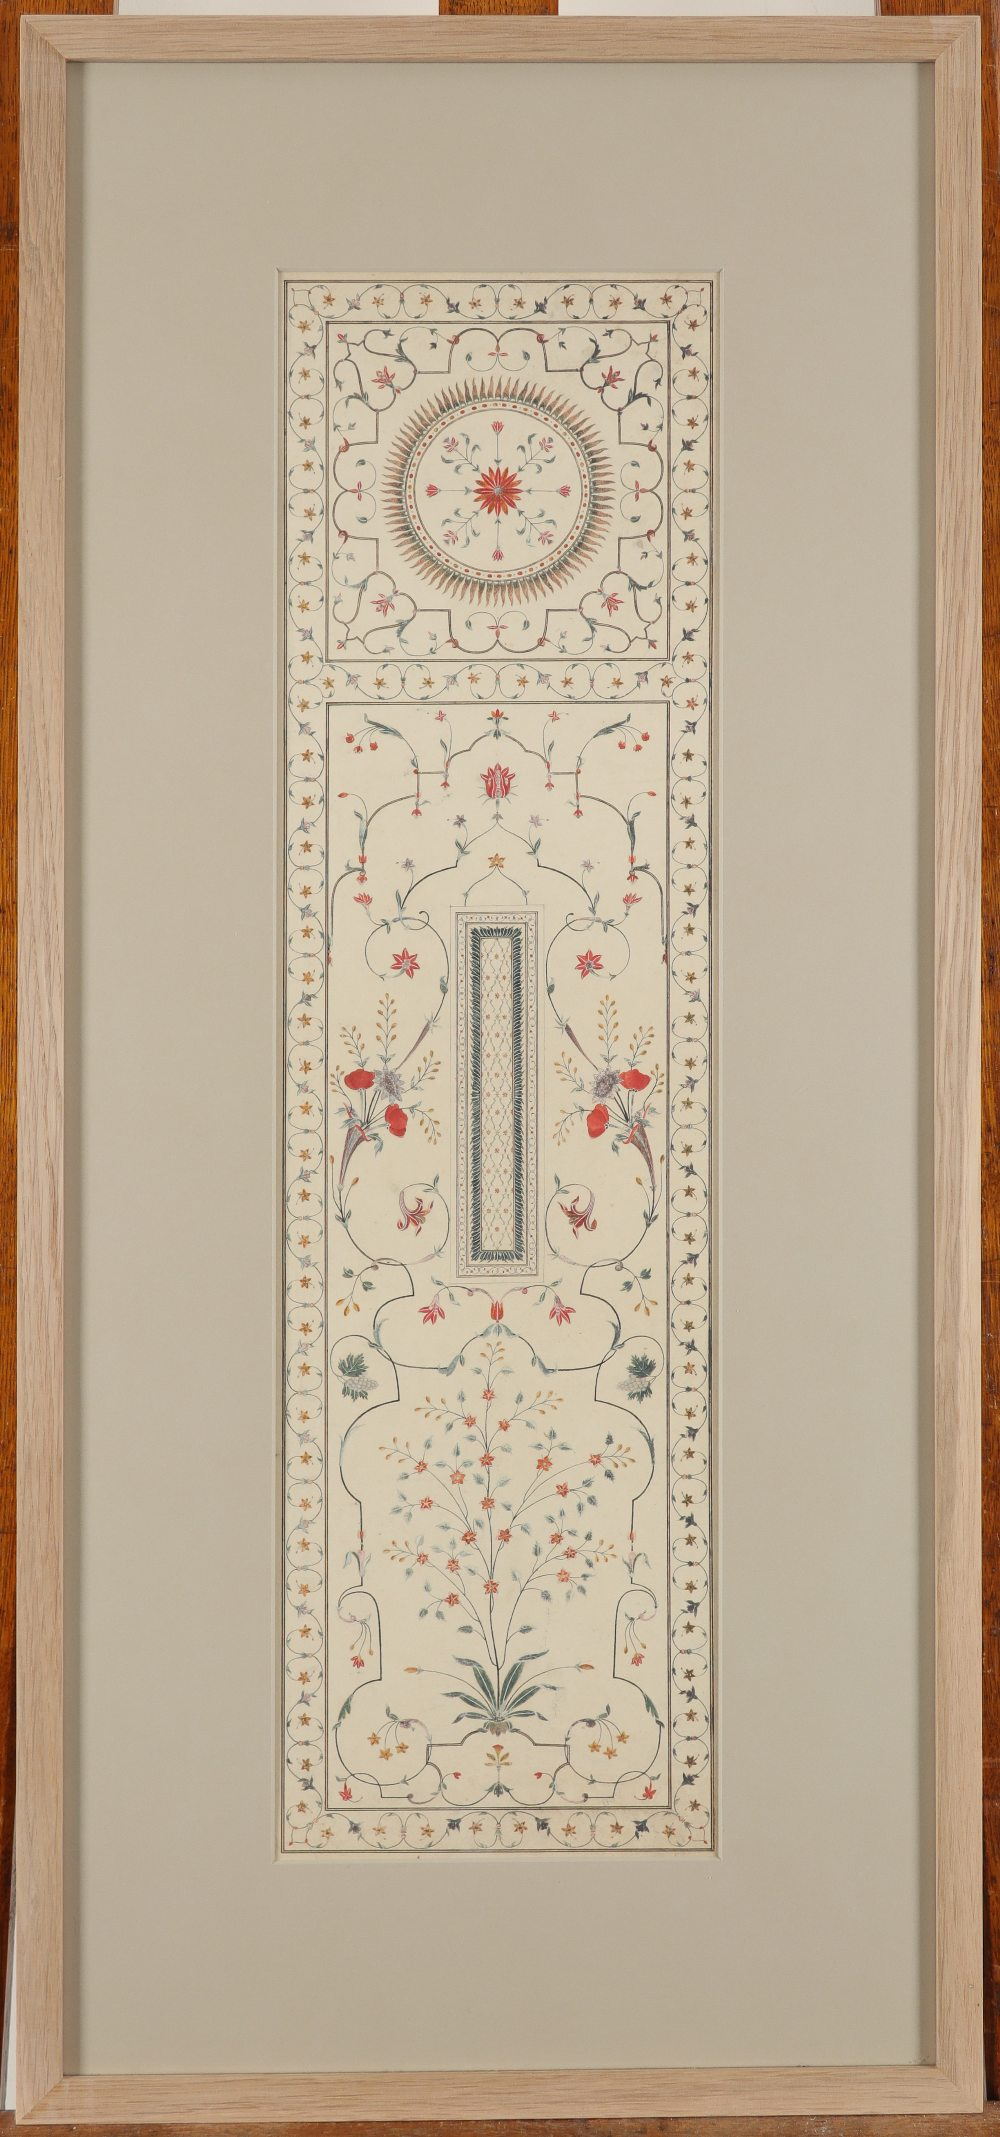 Company School c.1820 Two copies of the pietra dura work from the cenotaph, Taj Mahal, Agra A - Image 3 of 6